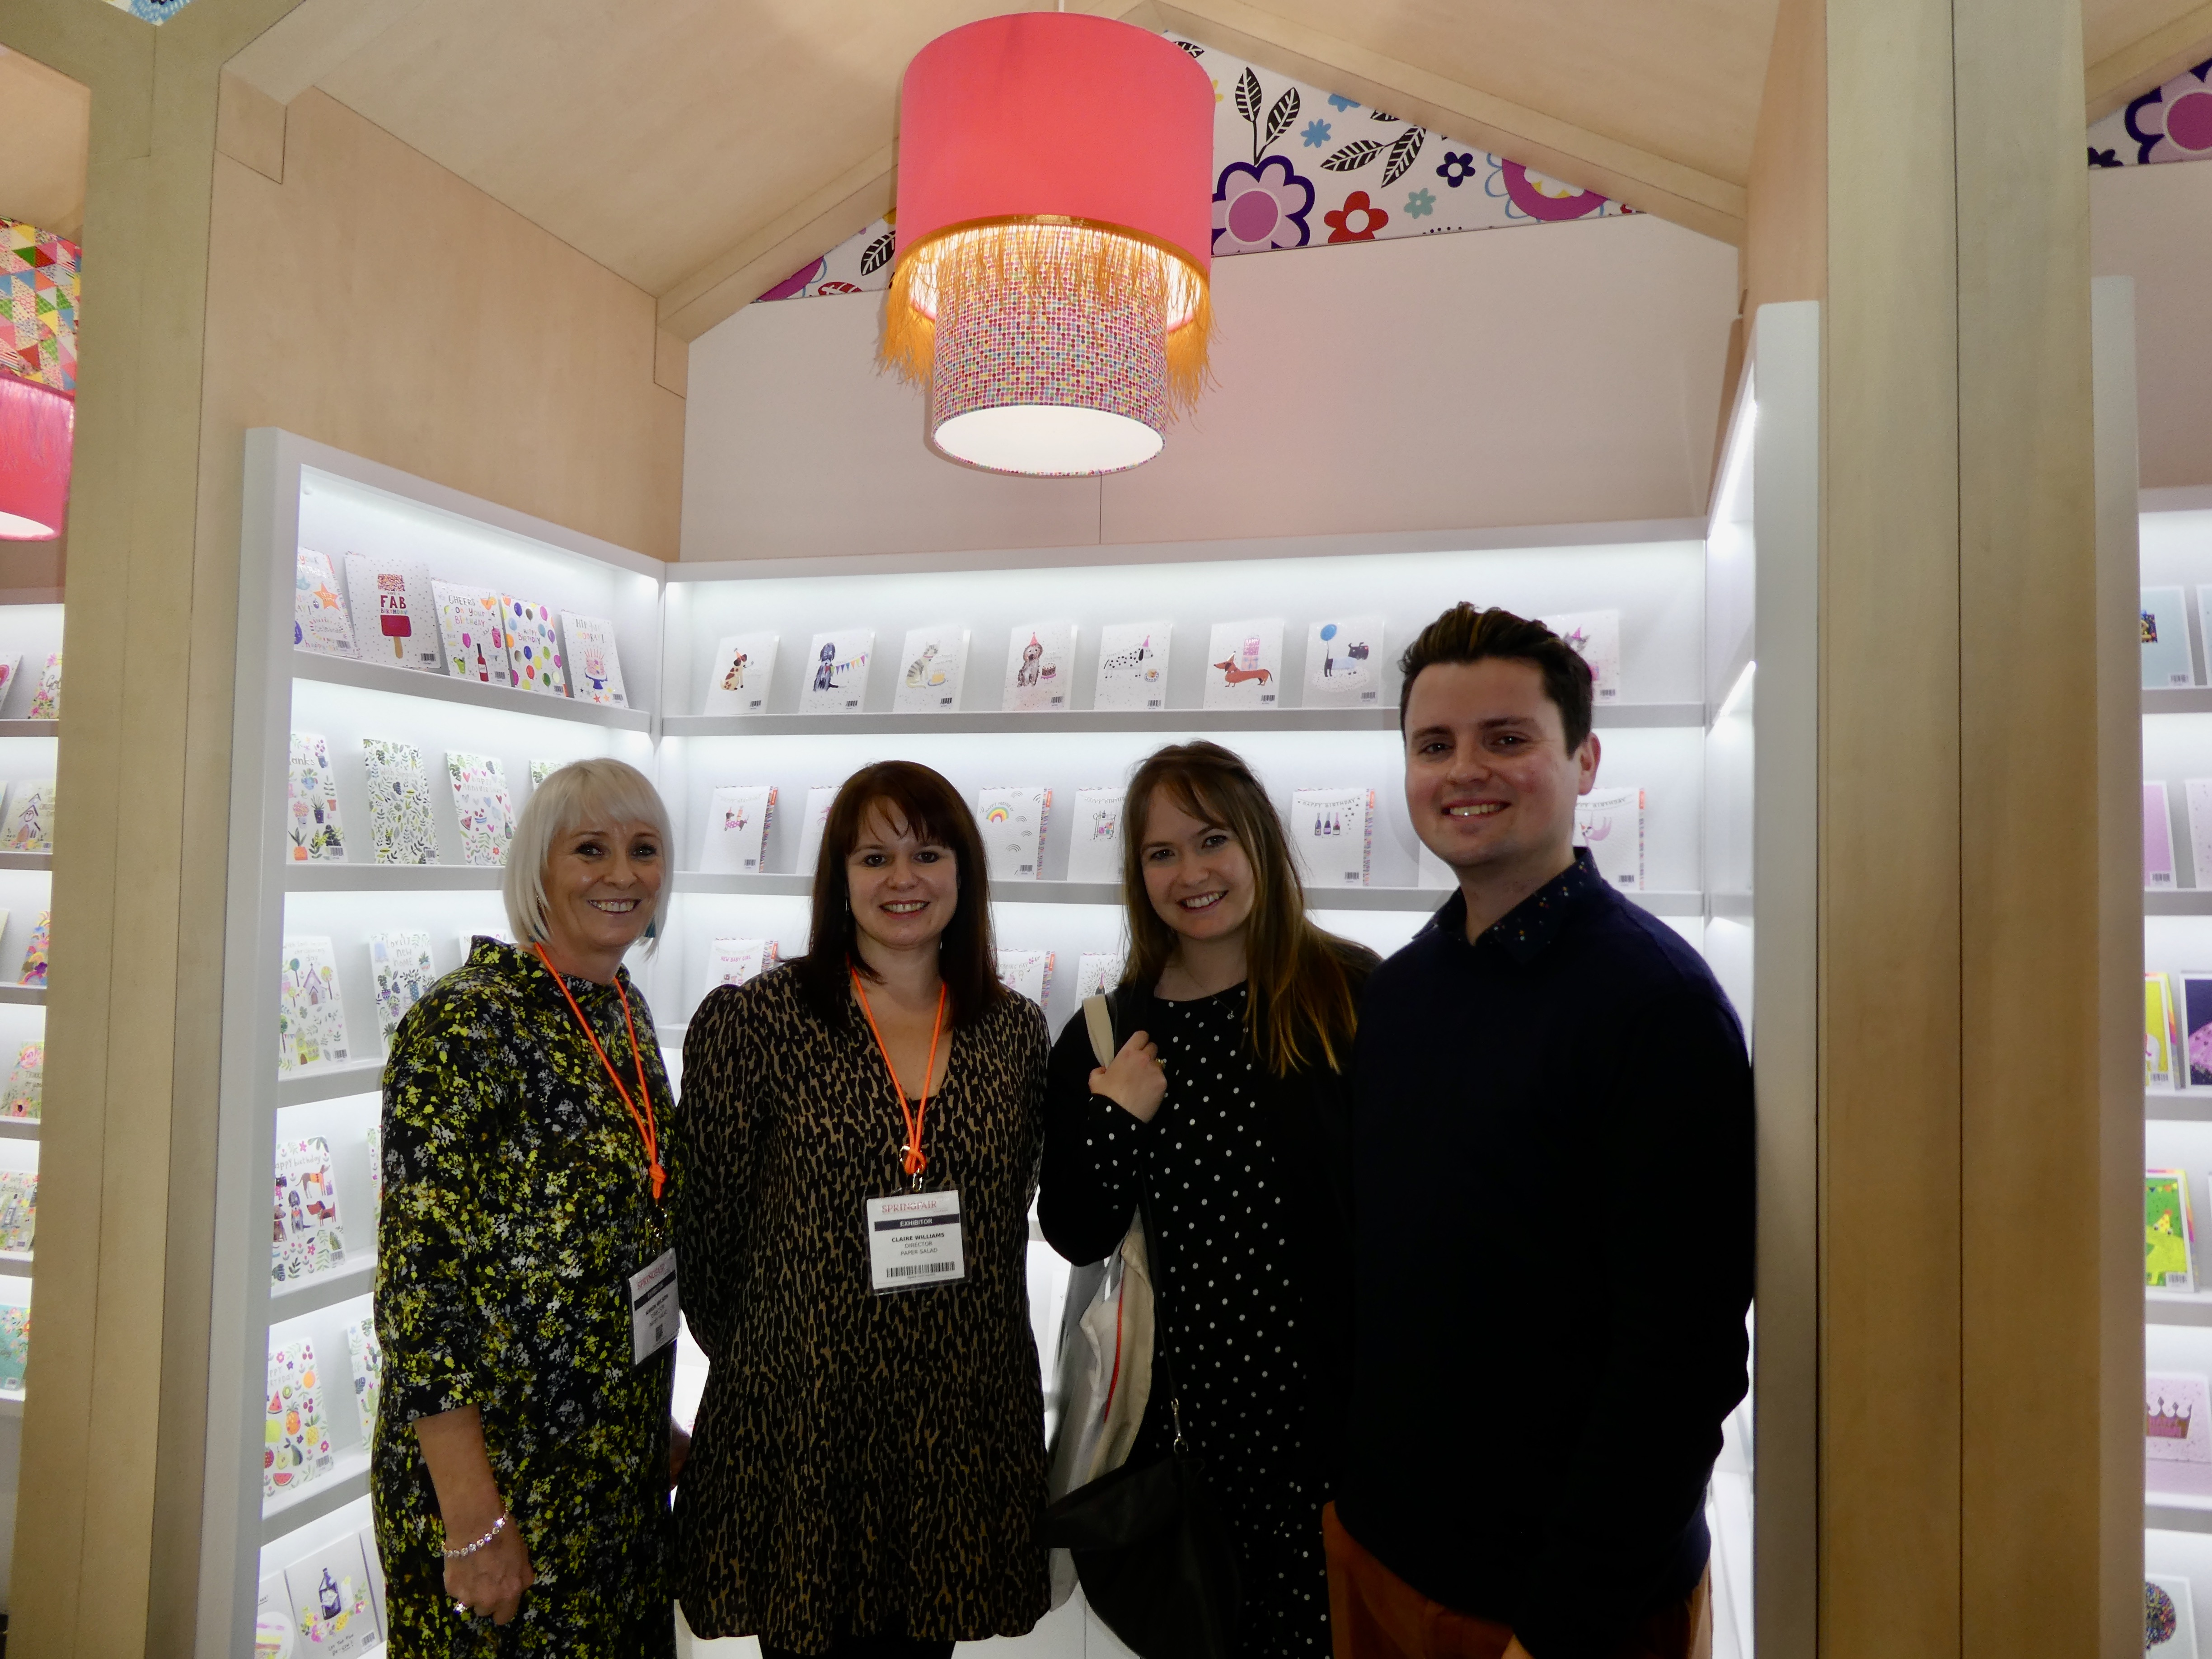 Above: Paperchase senior buyer Joe Guest (far right) is participating as a dragon for the first time. Seen here with assistant buyer Daisy Enticott (second right) on the Paper Salad stand at Spring Fair last week with the publisher's co-owners Karen Wilson (far left) and Claire Williams.